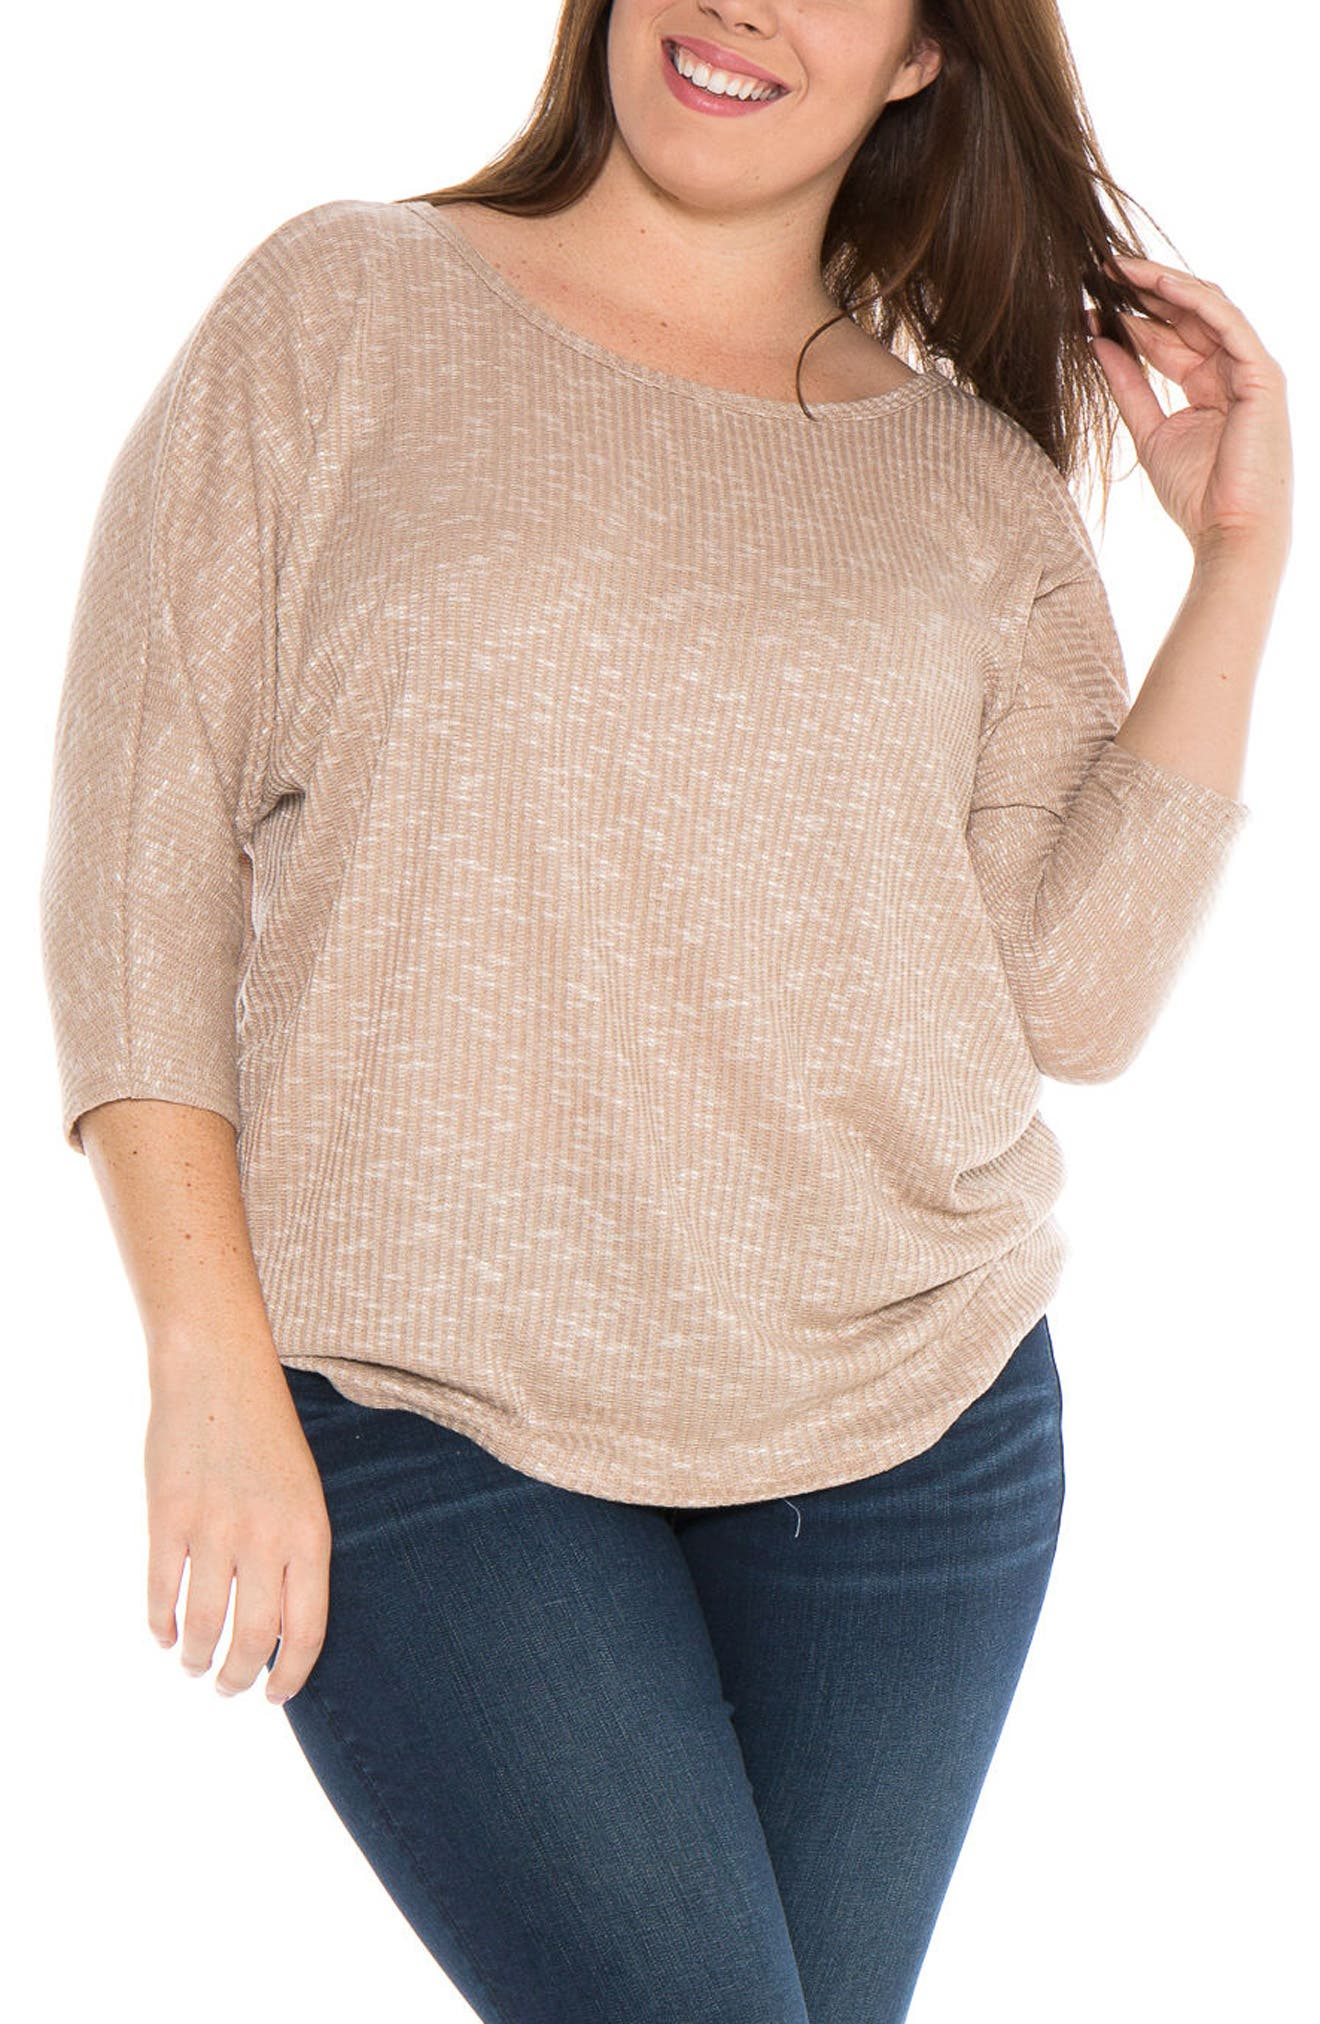 Alternate Image 1 Selected - SLINK Jeans Marble Knit Dolman Top (Plus Size)